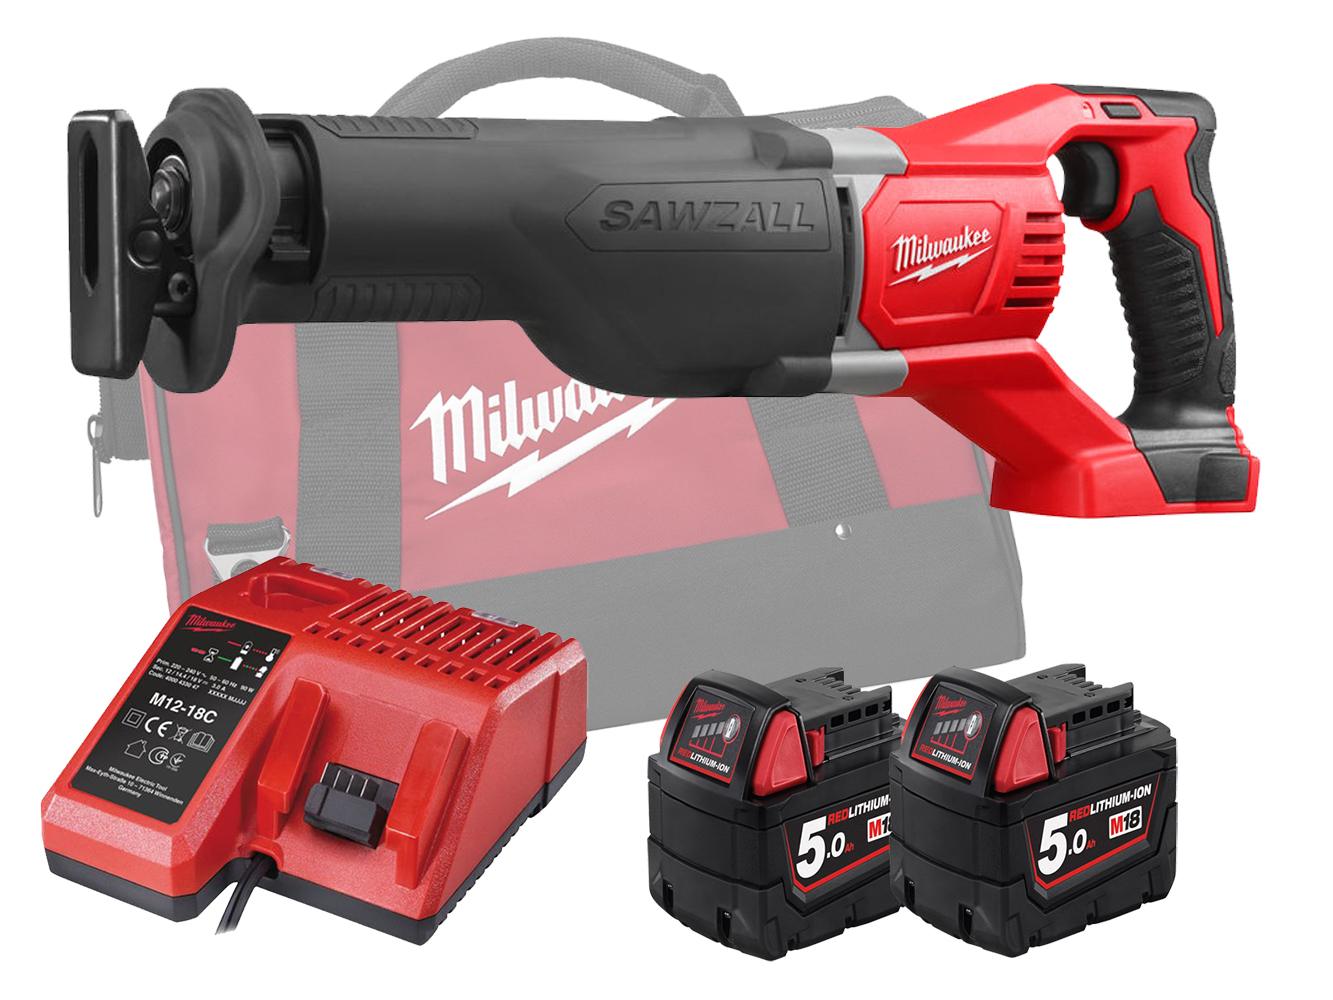 MILWAUKEE 18V BRUSHED SAWZALL (RECIPROCATING SAW) - M18BSX - 5.0AH PACK